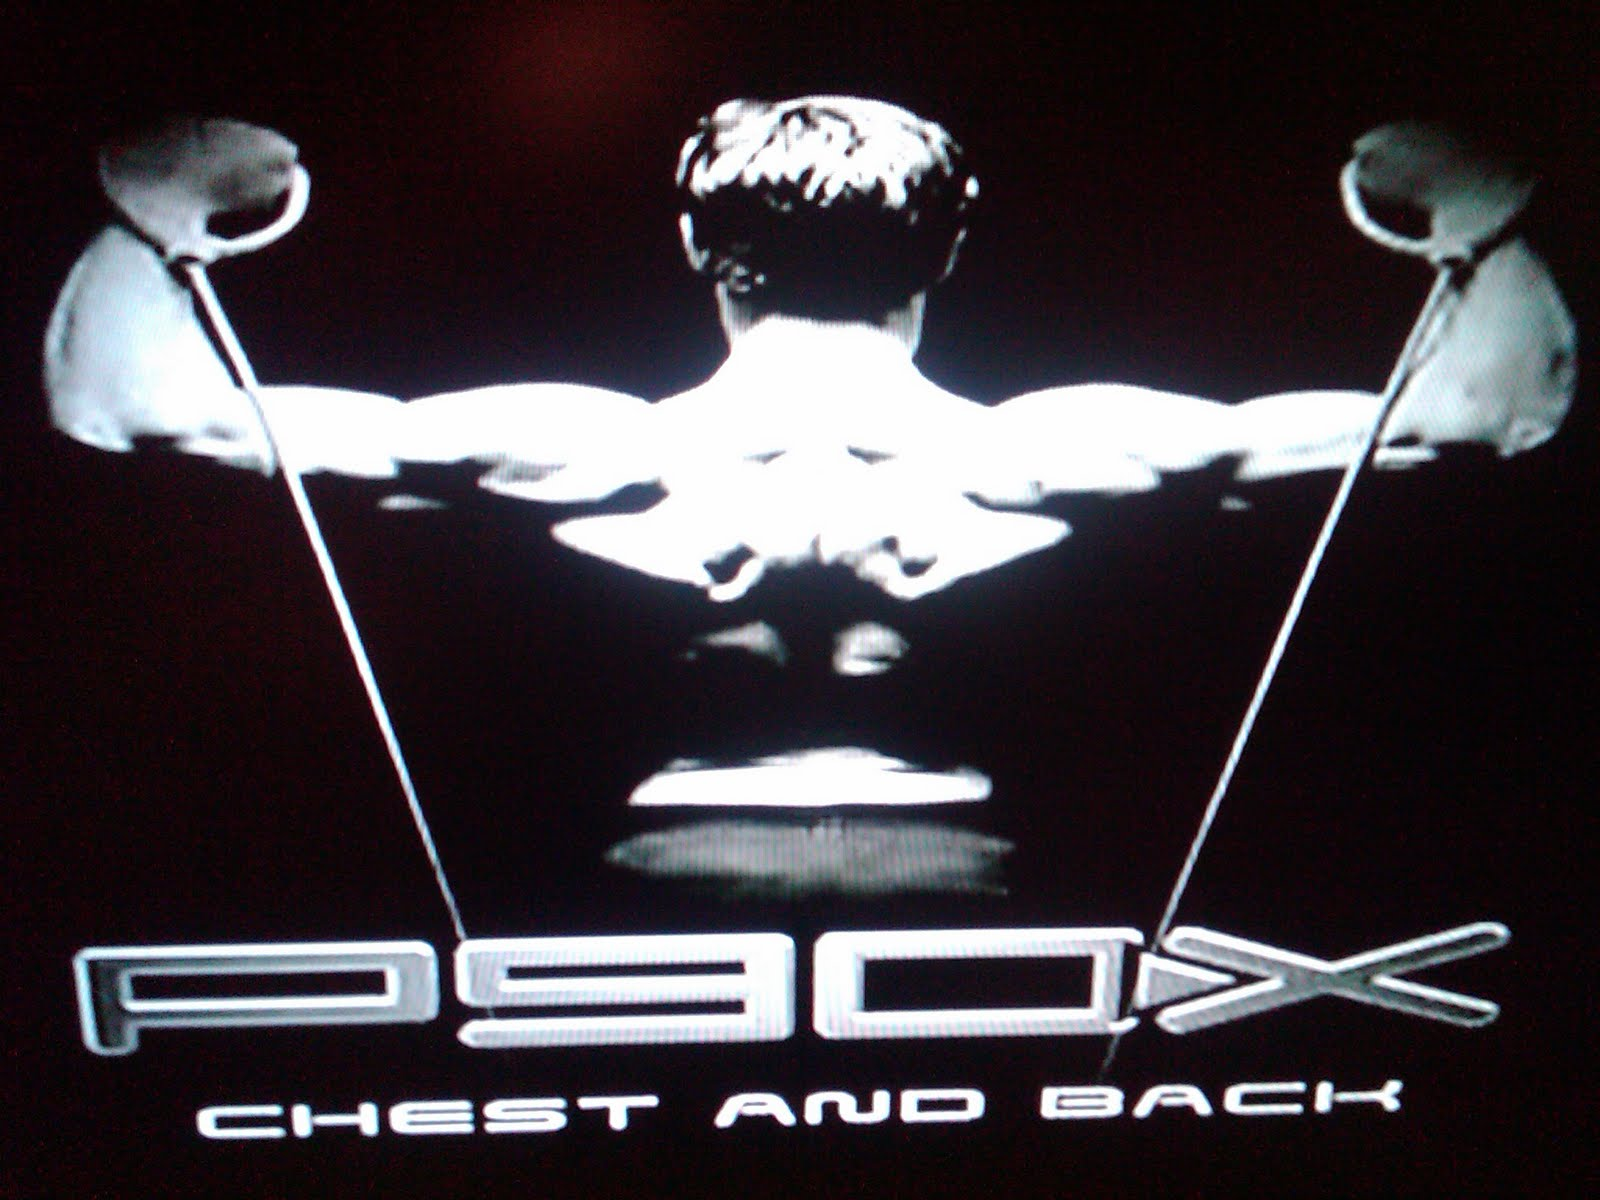 A Review of P90X: Chest and Back A Review of P90X: Chest and Back new foto